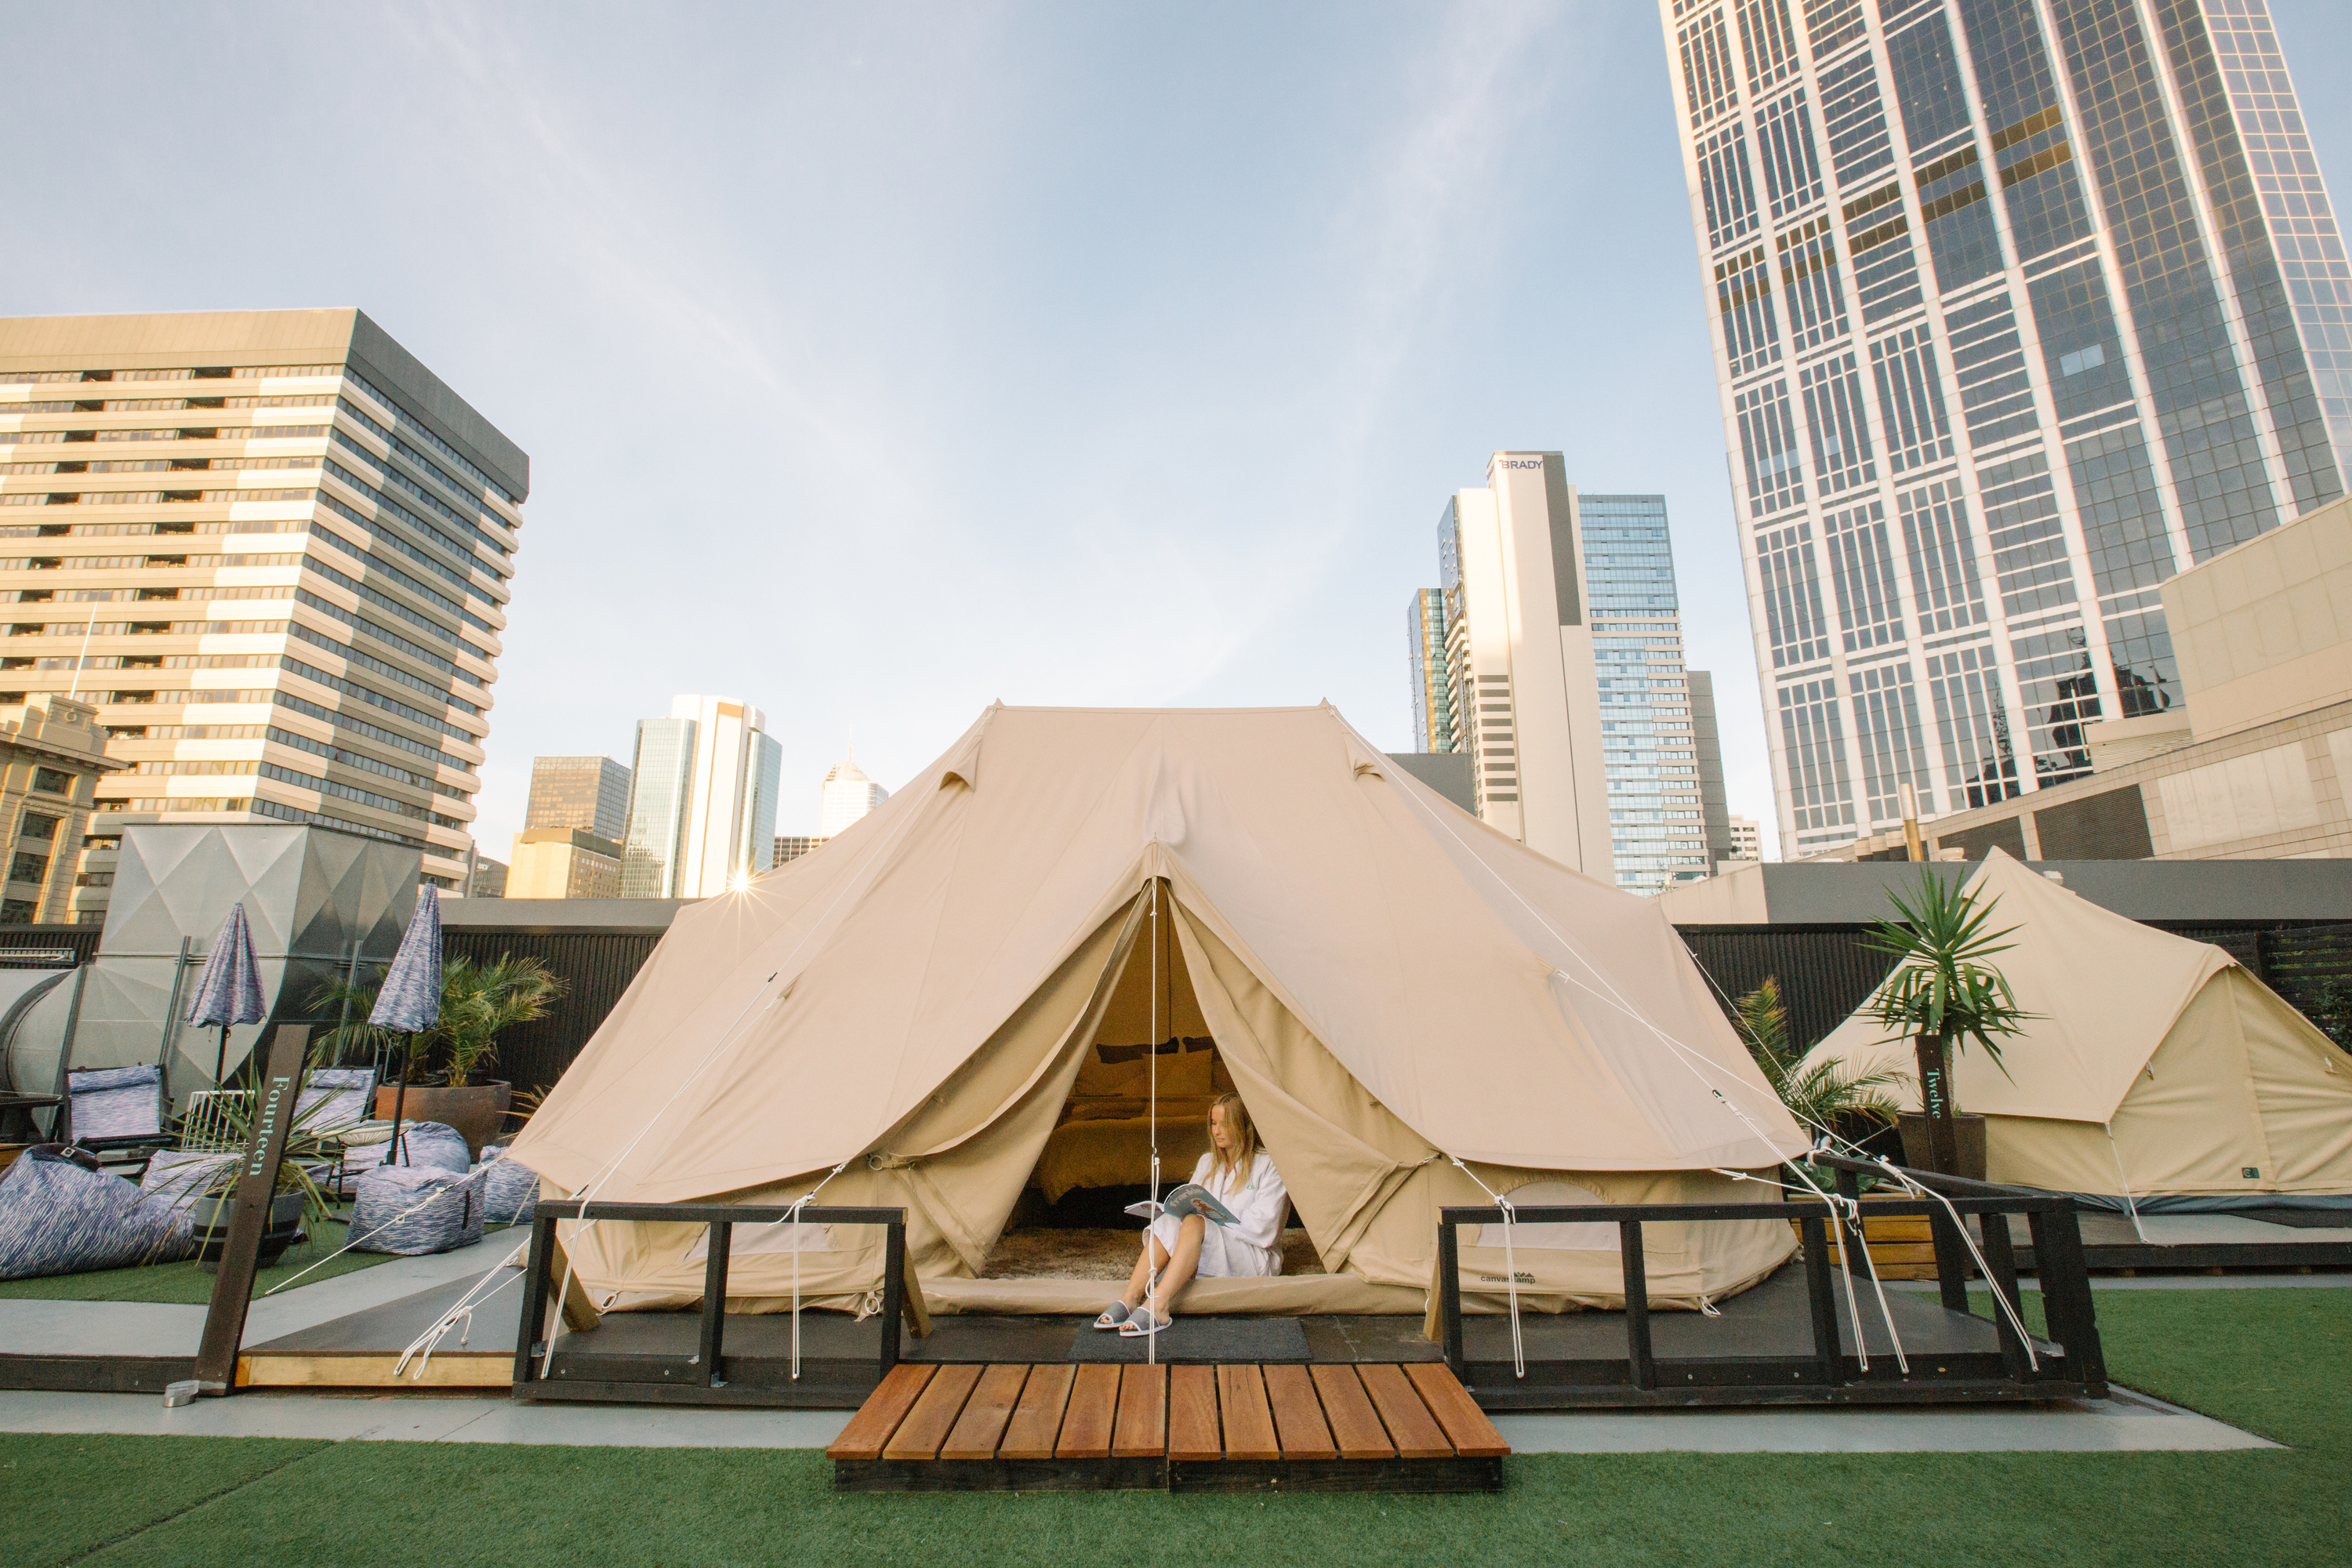 Win an all-inclusive rooftop camping experience at St. Jerome's - The Hotel